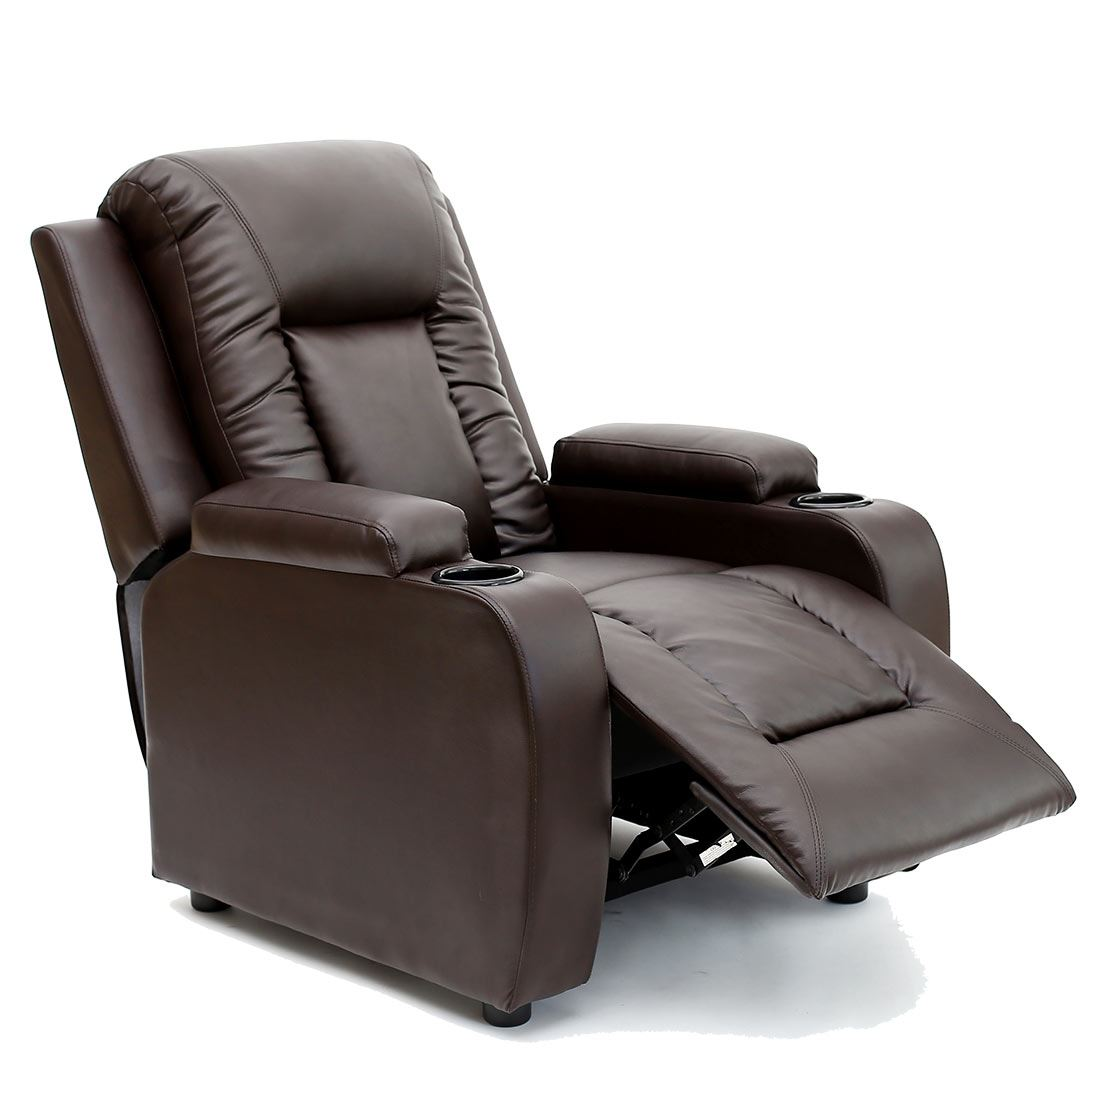 Oscar Brown Leather Recliner W Drink Holders Armchair Sofa